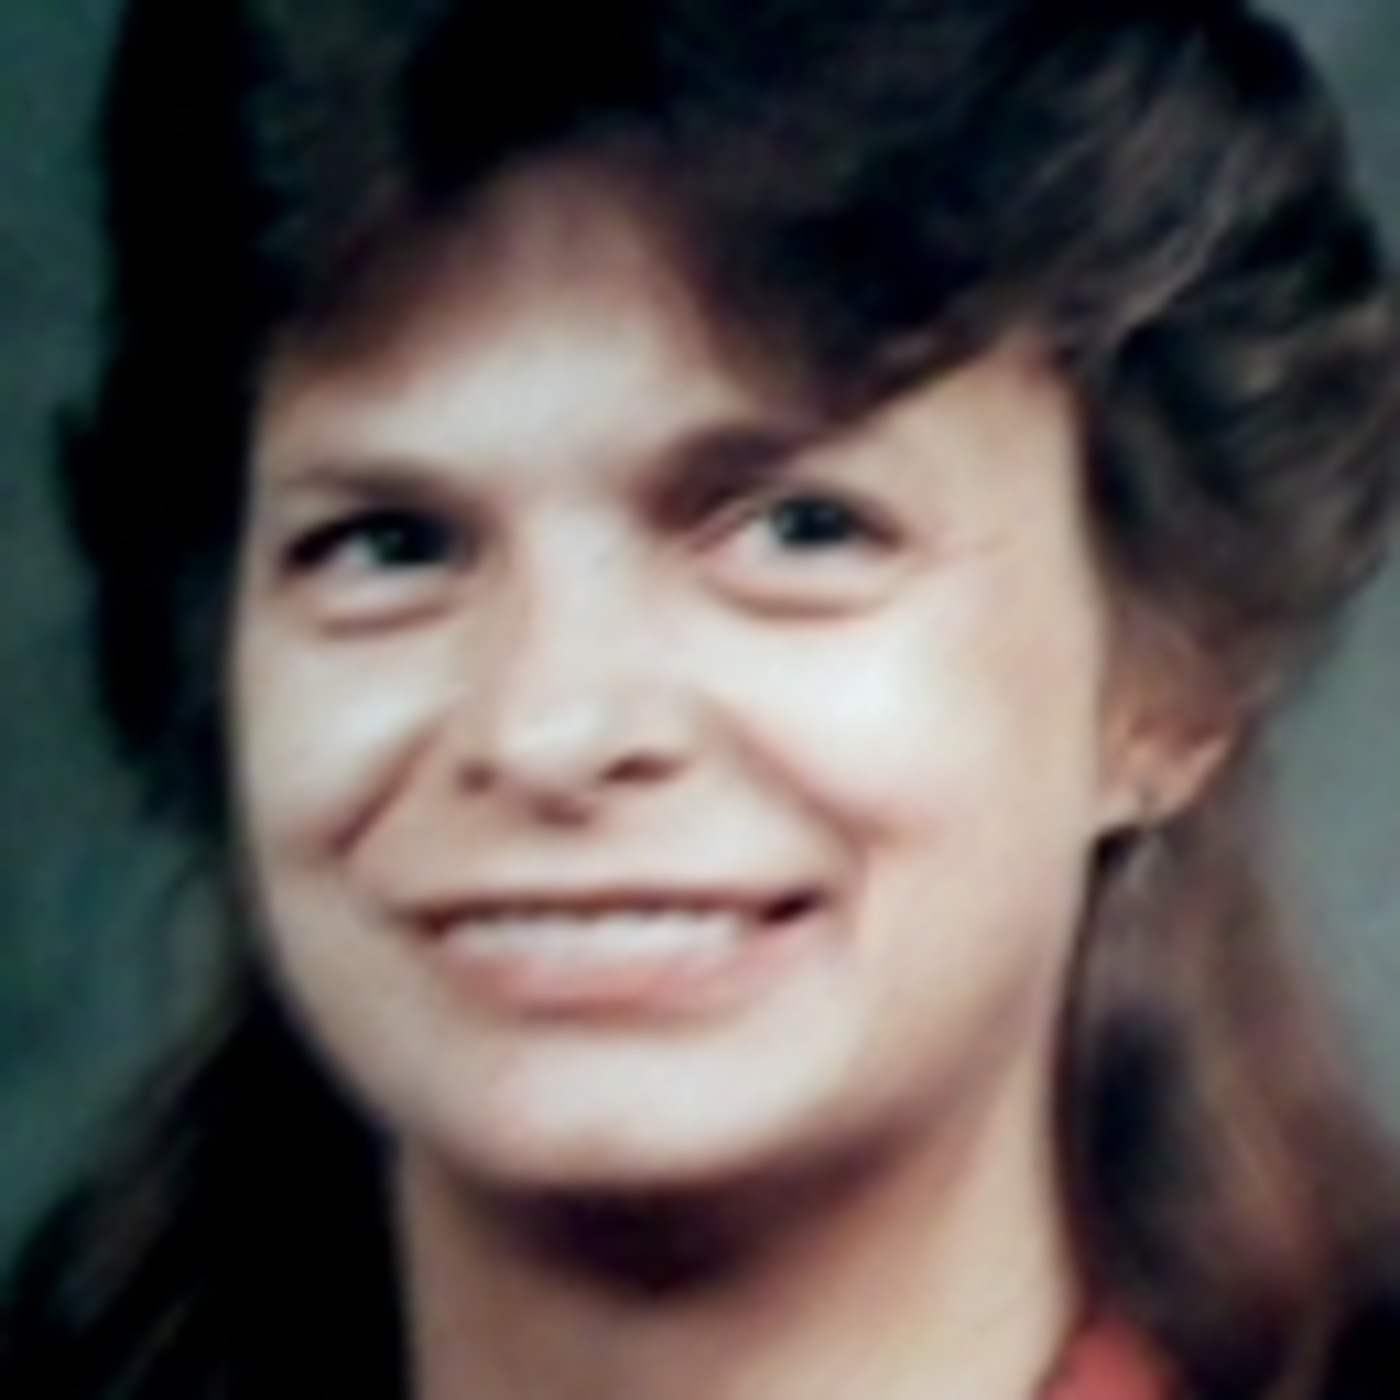 UnFound-A Missing Persons Program - TopPodcast com